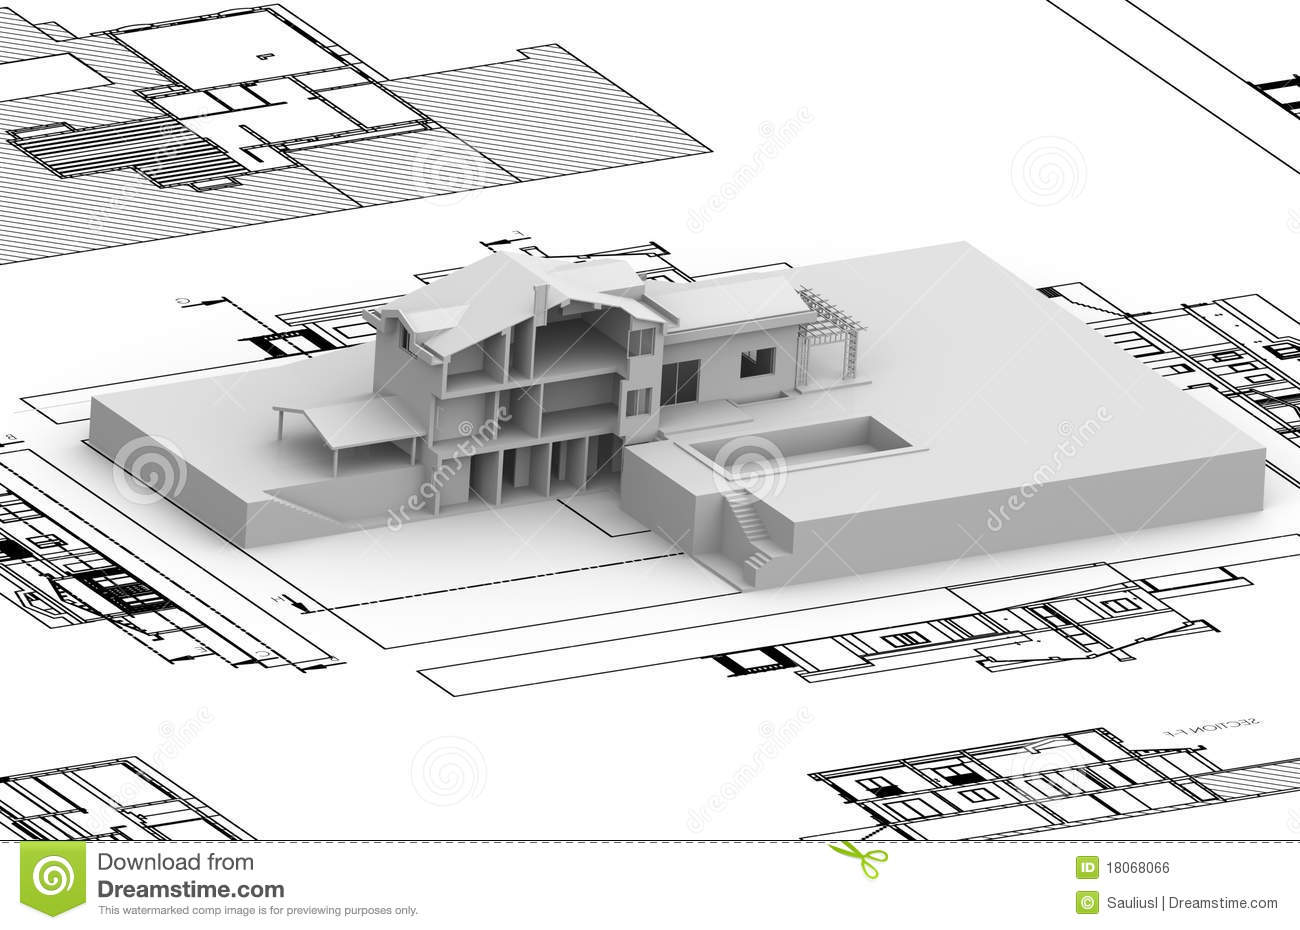 House plan with 3d model royalty free stock image image for House plan 3d model